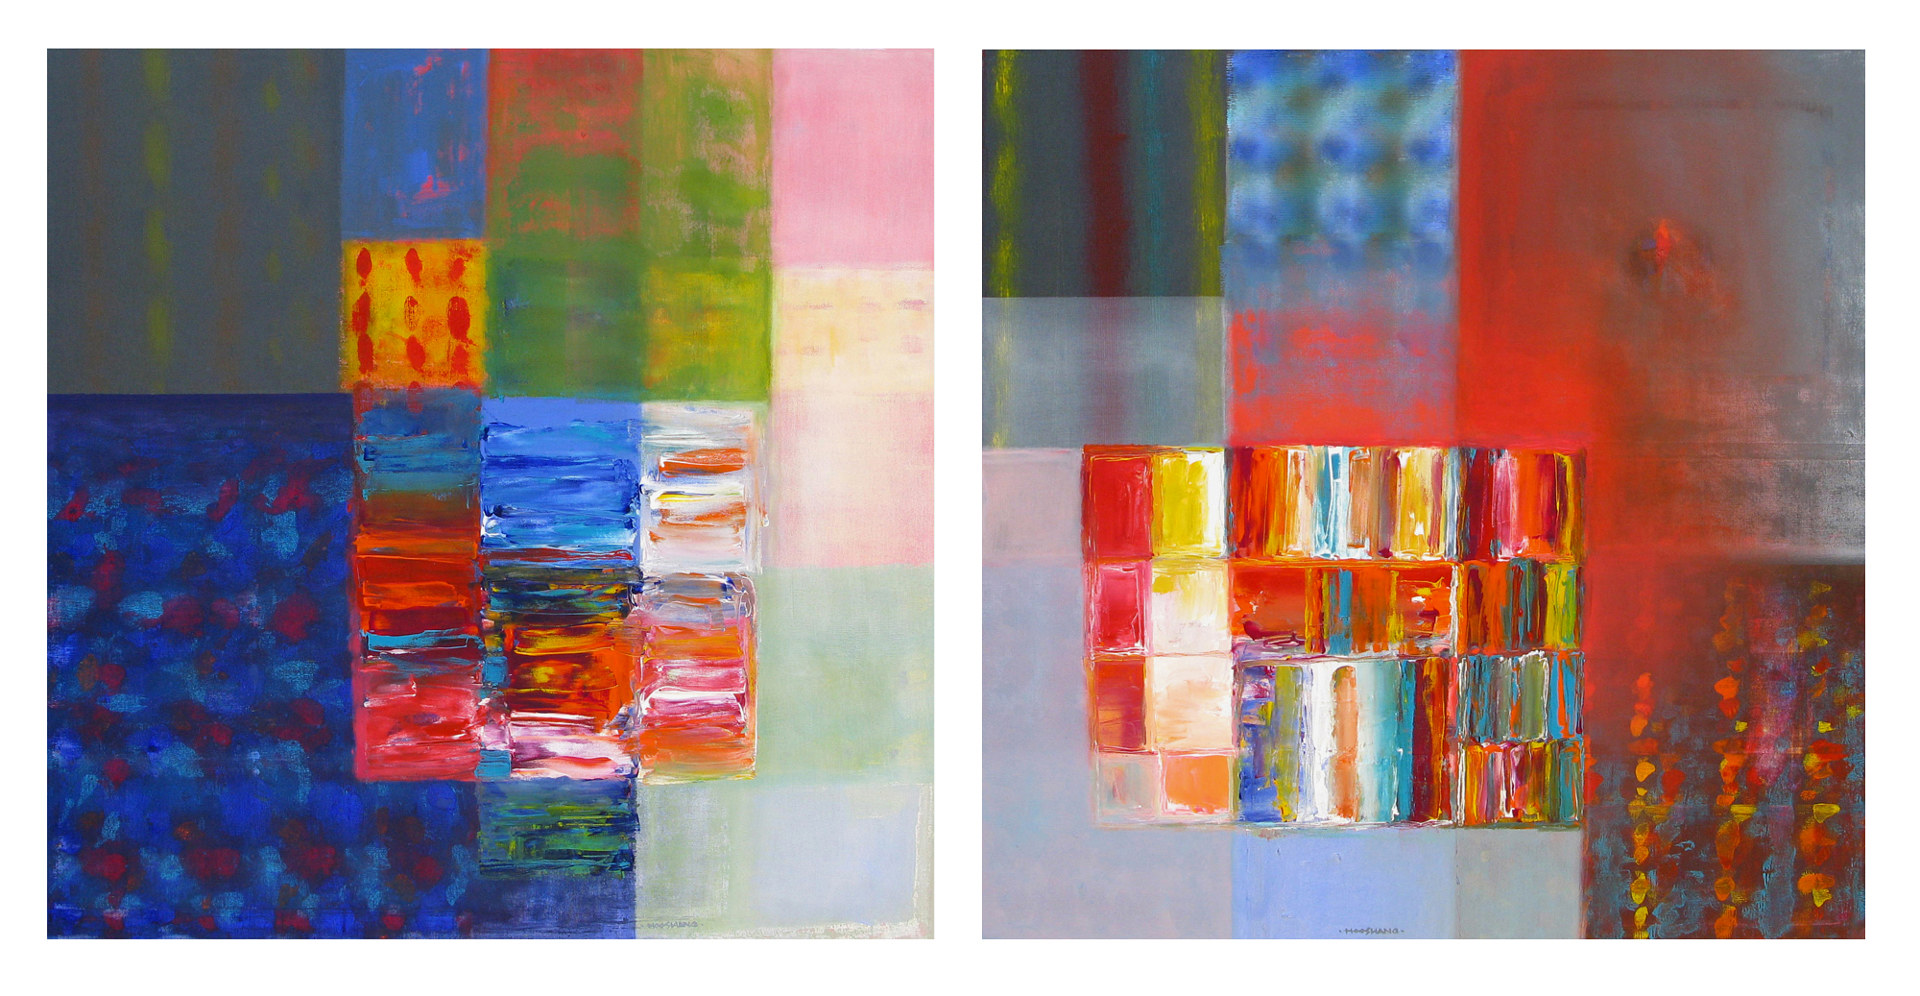 Acrylic painting Rubic's Melody, 36x36 inches each by Hooshang Khorasani